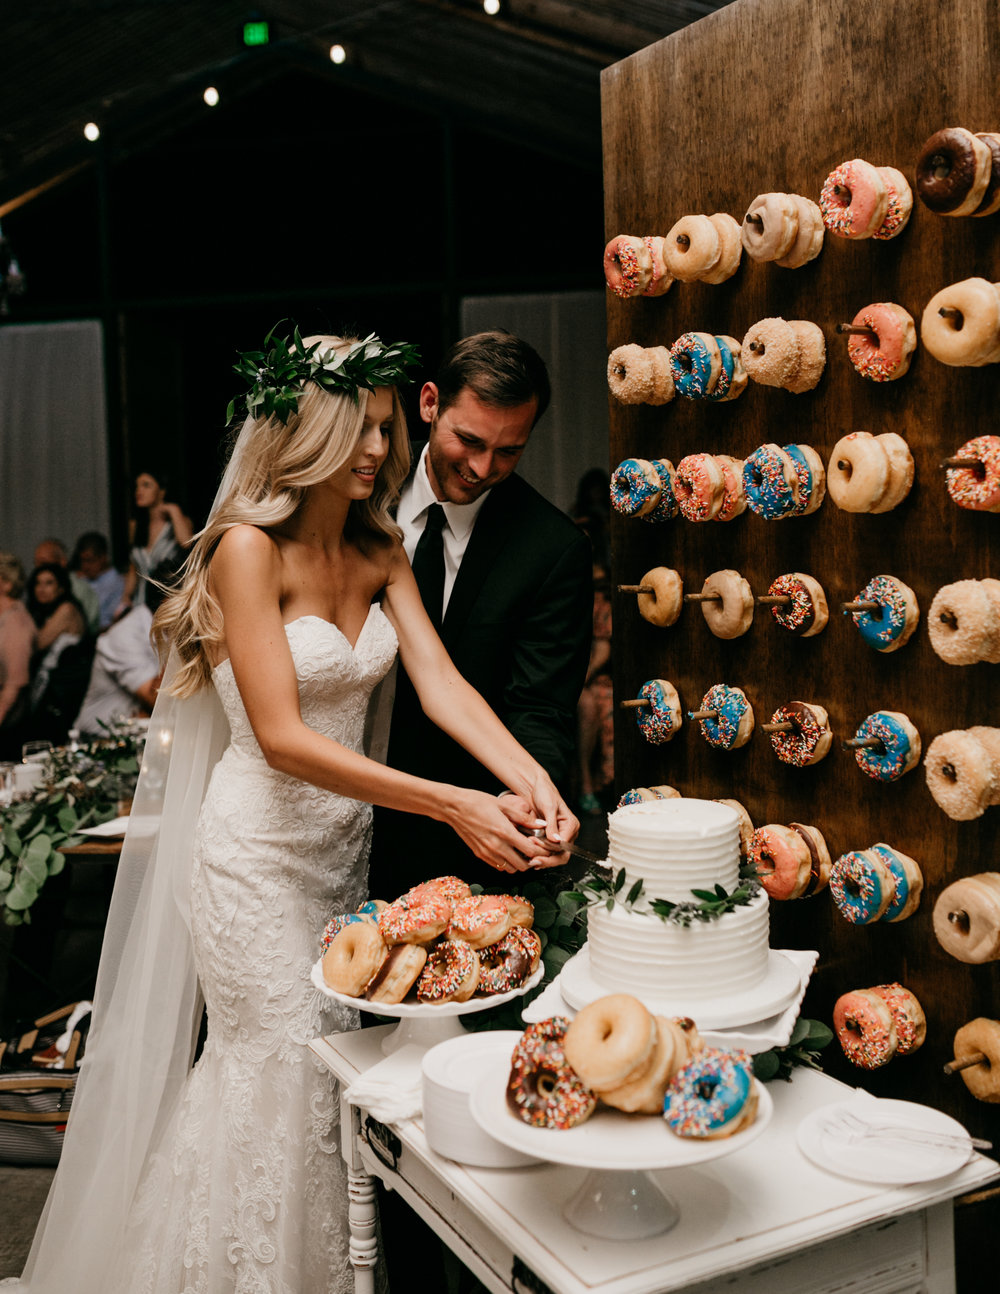 All You Need is Love and Doughnuts!  - with Tremaine Ranch - Arizona Wedding & Event, Vintage, Furniture, Tableware, & Specialty Rentals in Phoenix, Tucson, Flagstaff, Sedona, Tempe, Chandler, Mesa, Gilbert, Prescott, Payson45.jpg